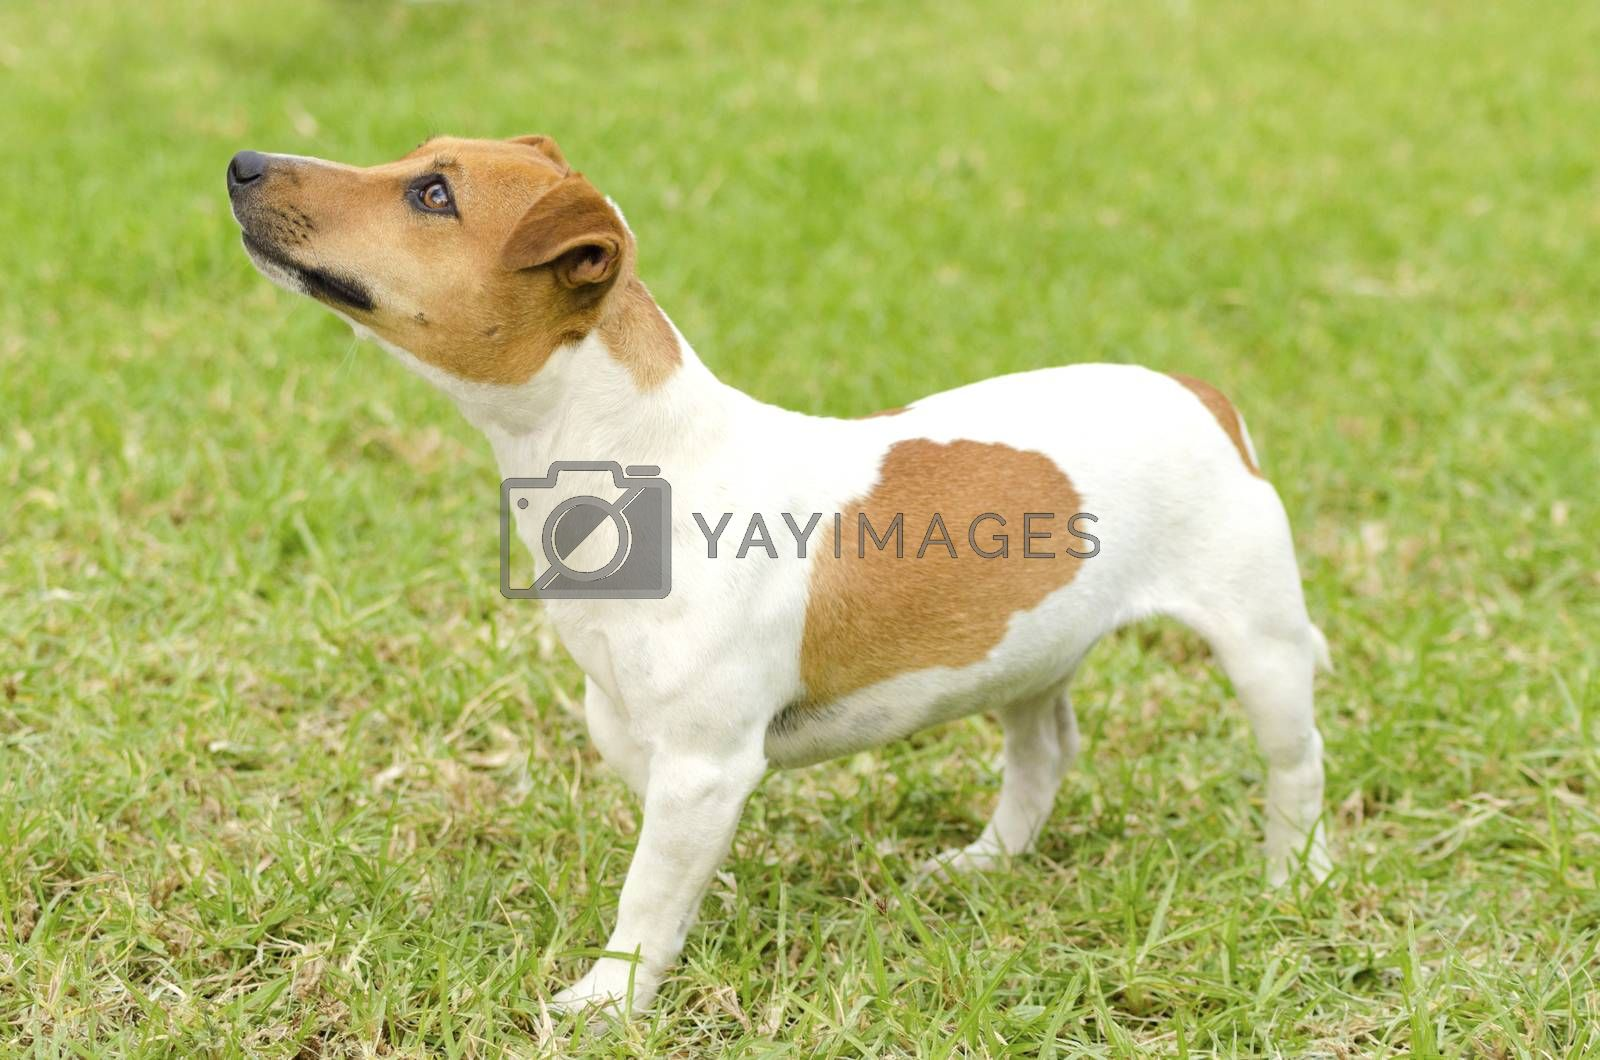 Jack Russell Terrier by f8grapher